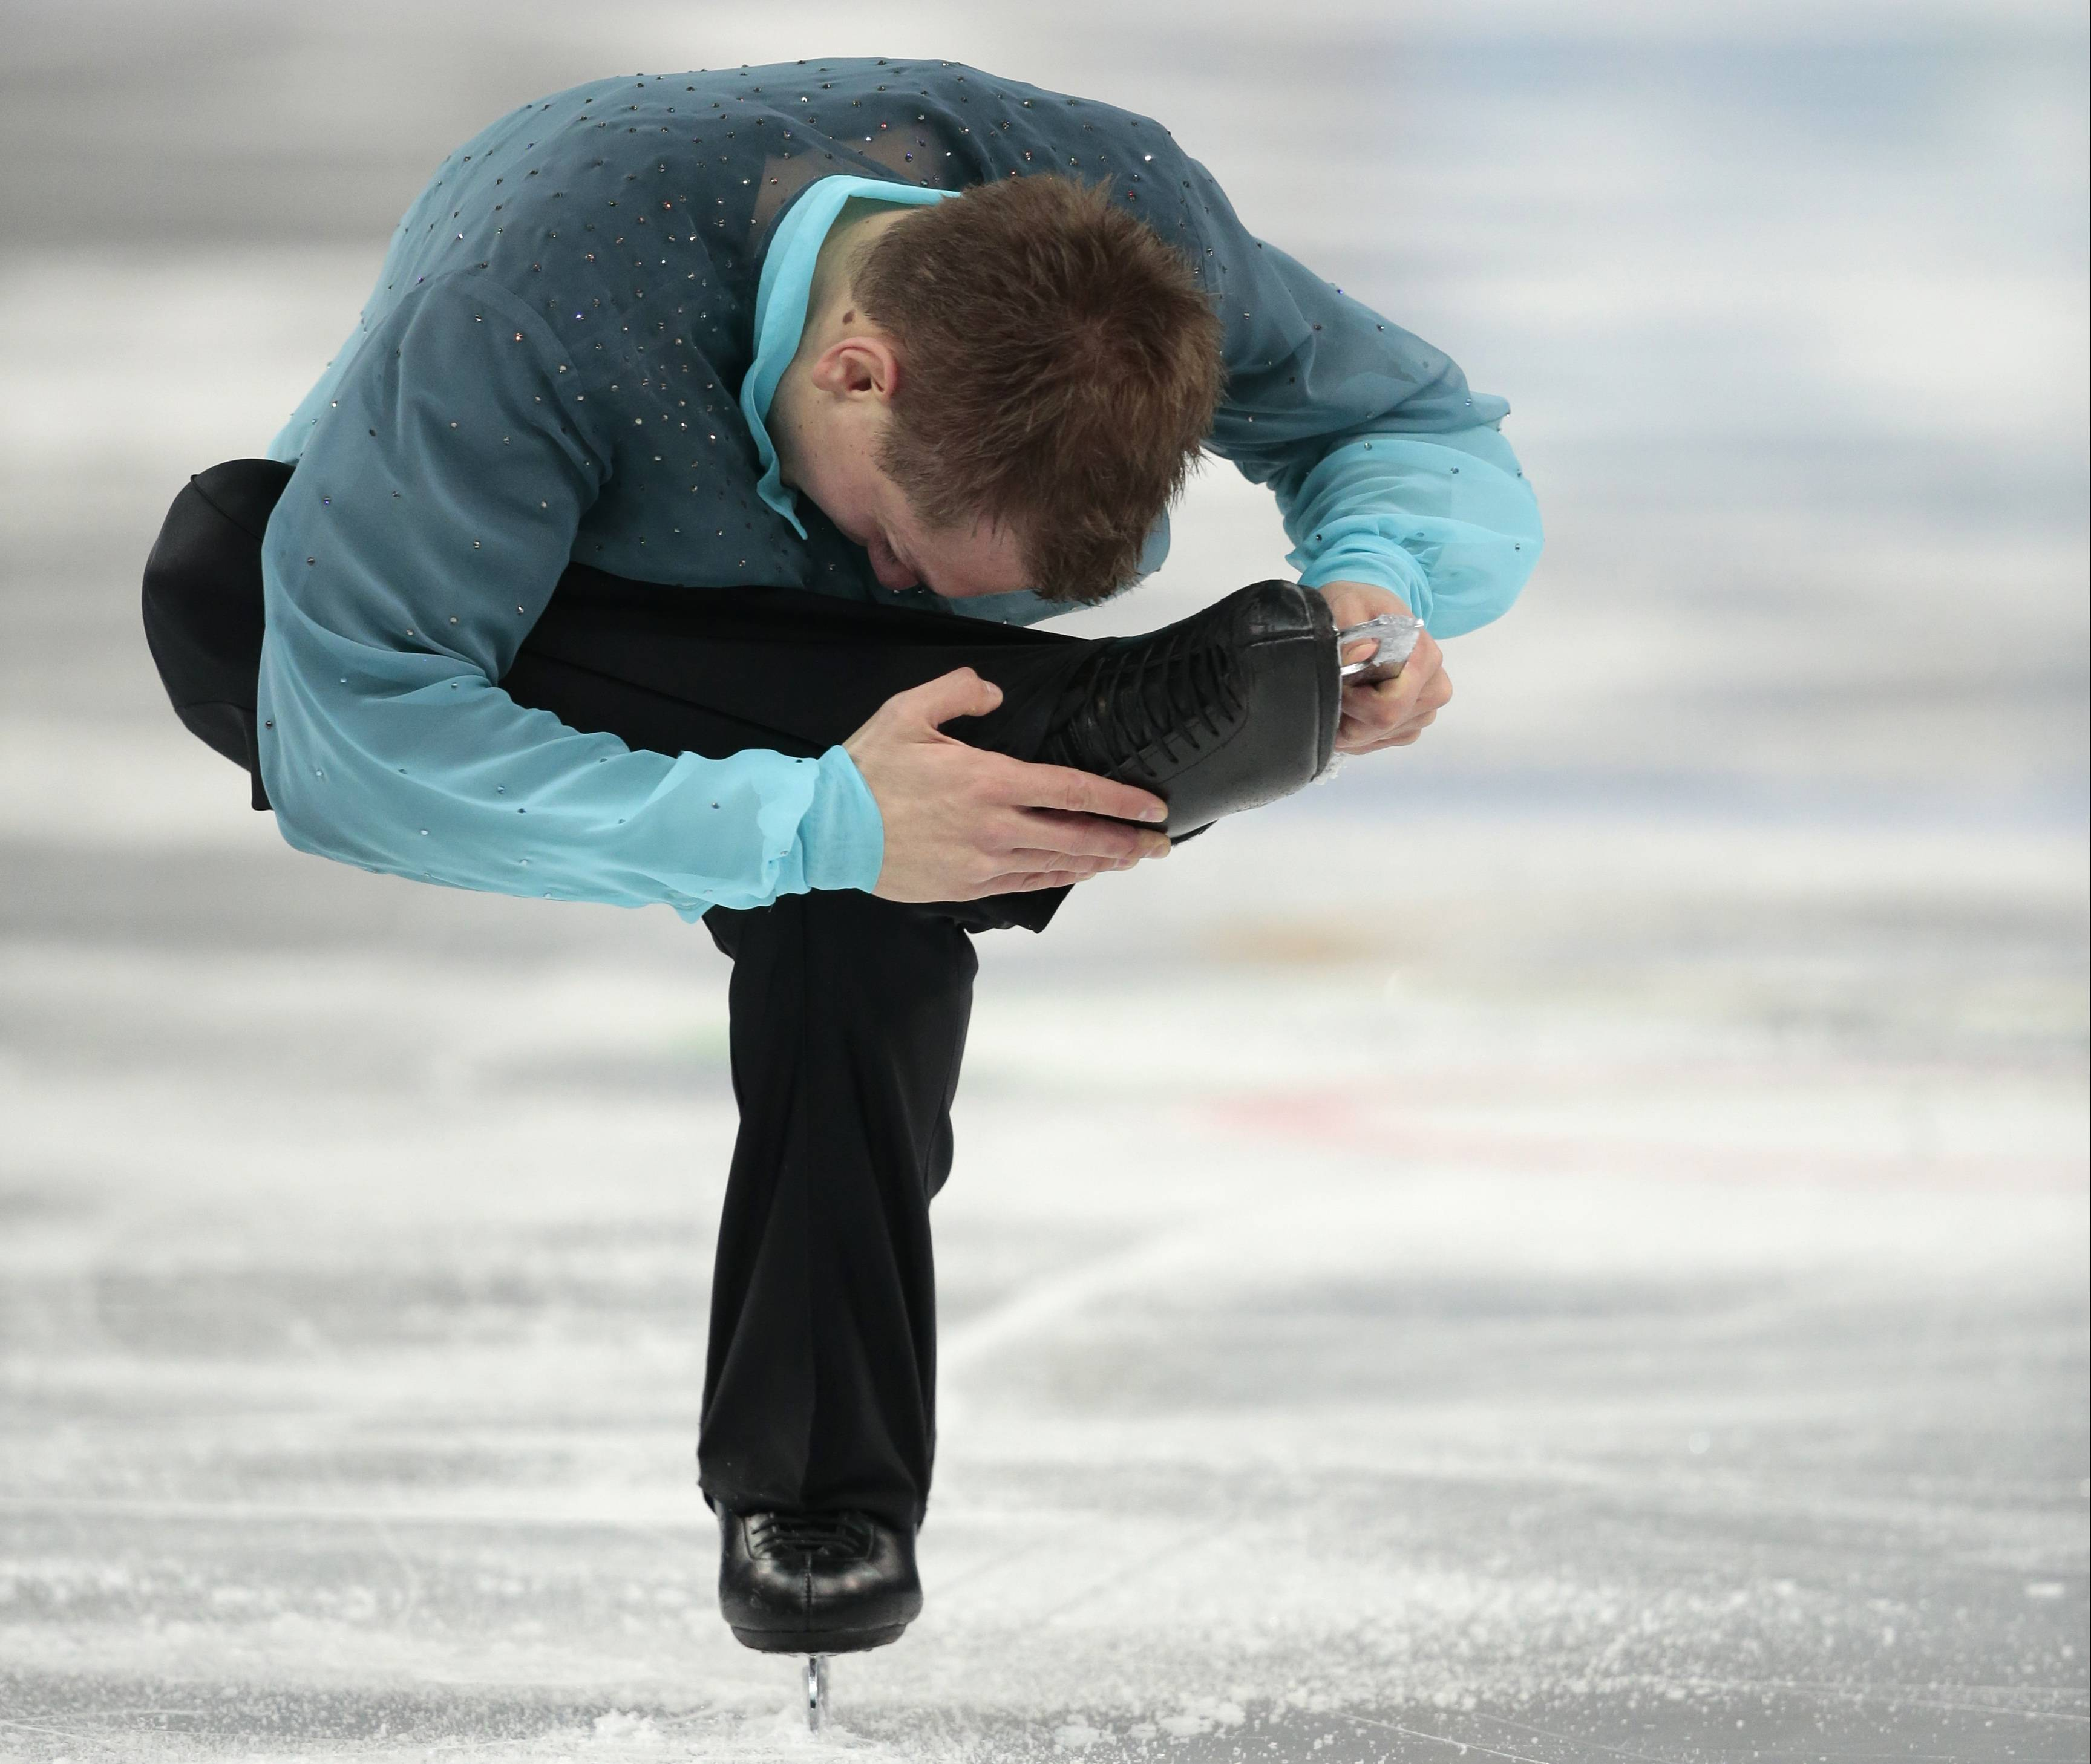 Peter Liebers of Germany competes in the men's short program figure skating competition.